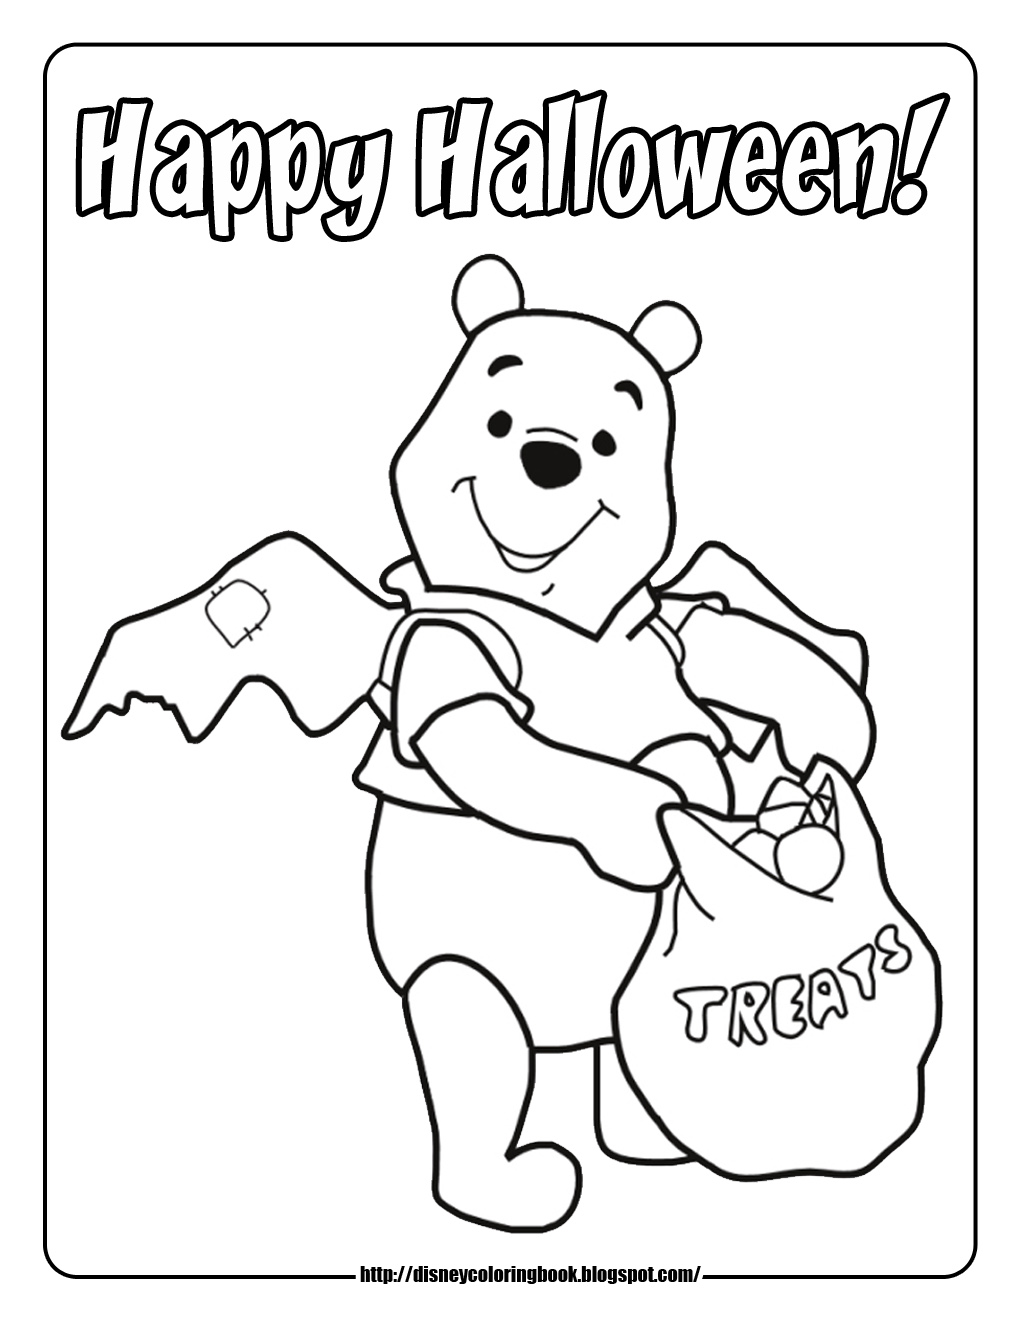 Pooh and Friends Halloween 2 Free